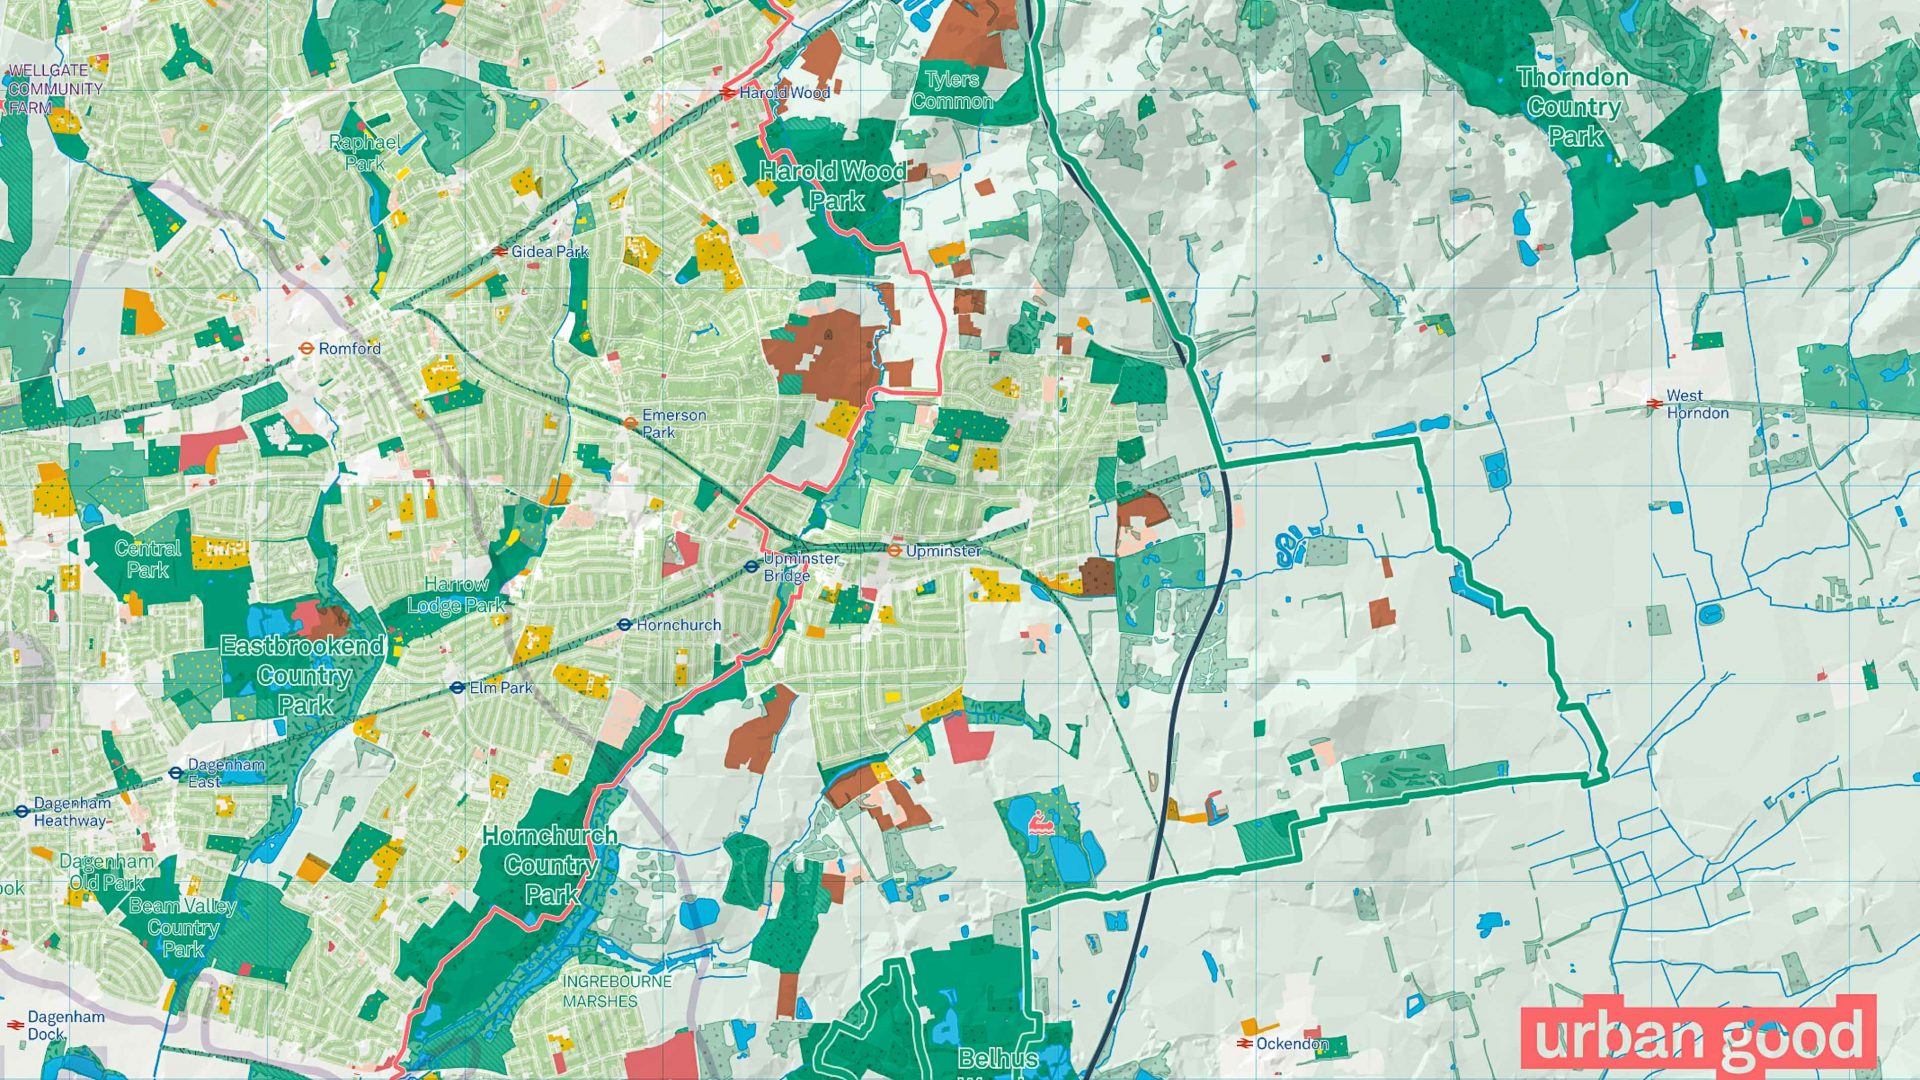 London National Park City: An Urban Good map of London National Park.